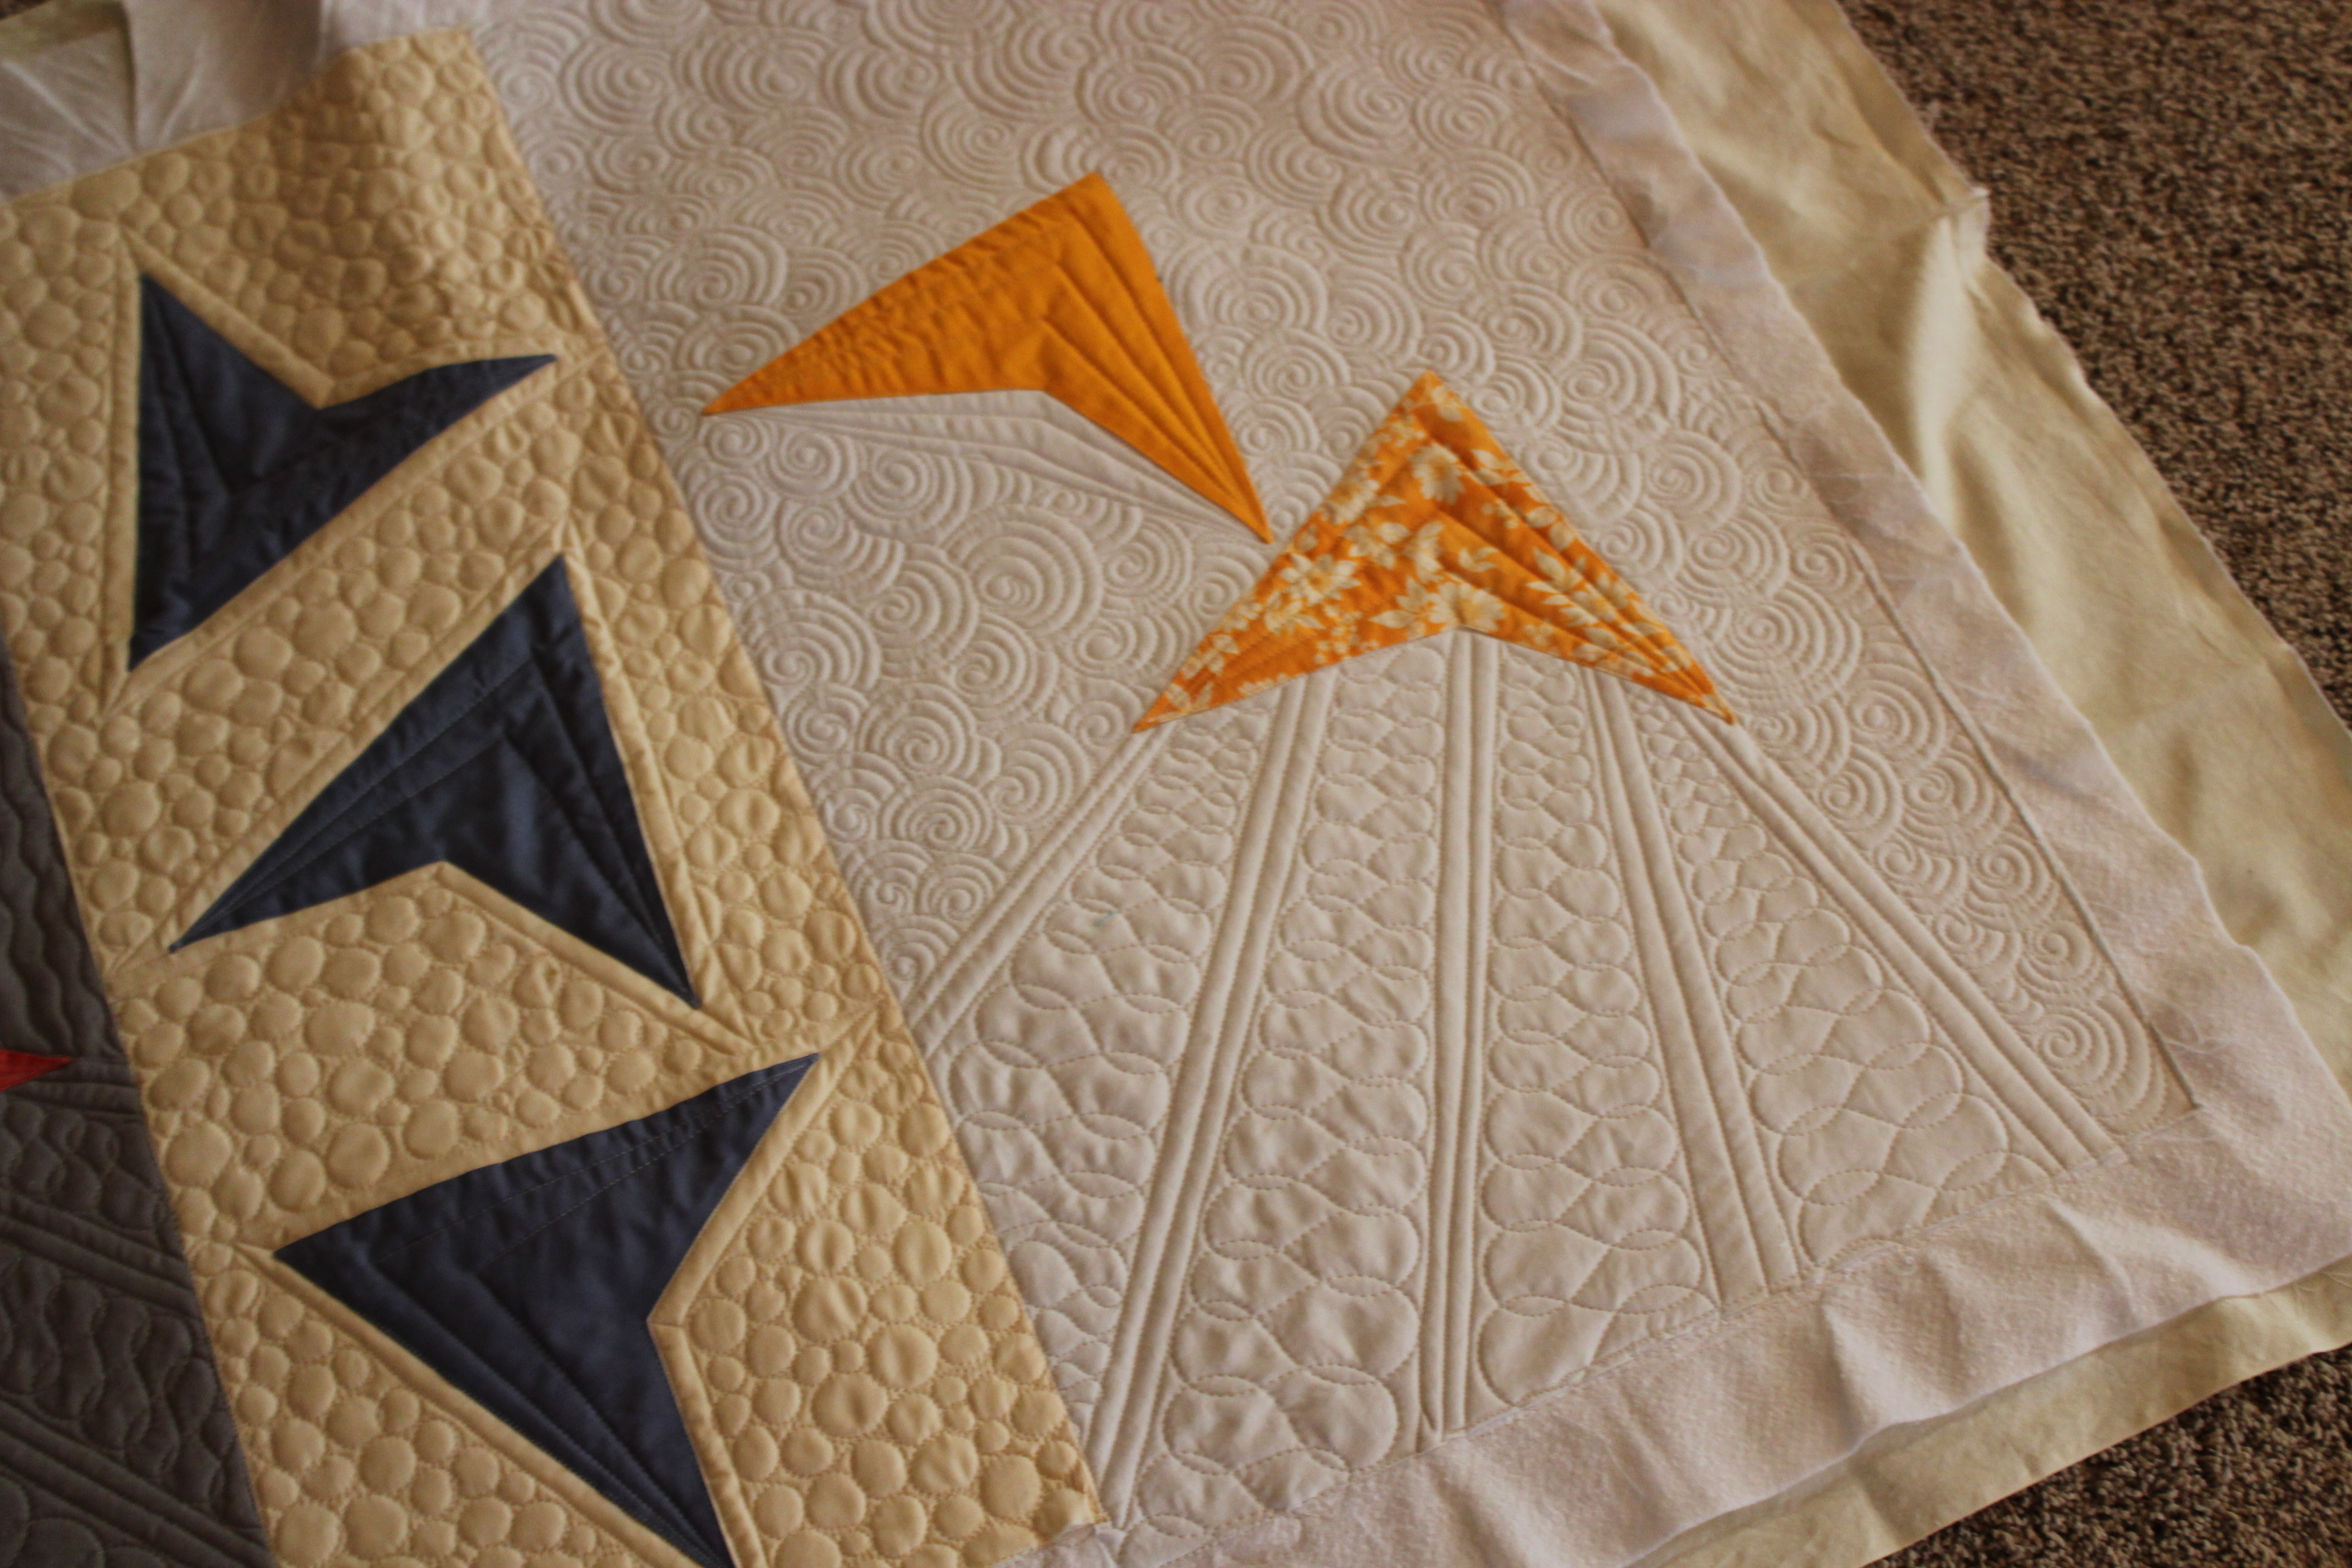 Quilting is my therapy machine quilting applique quilts angela